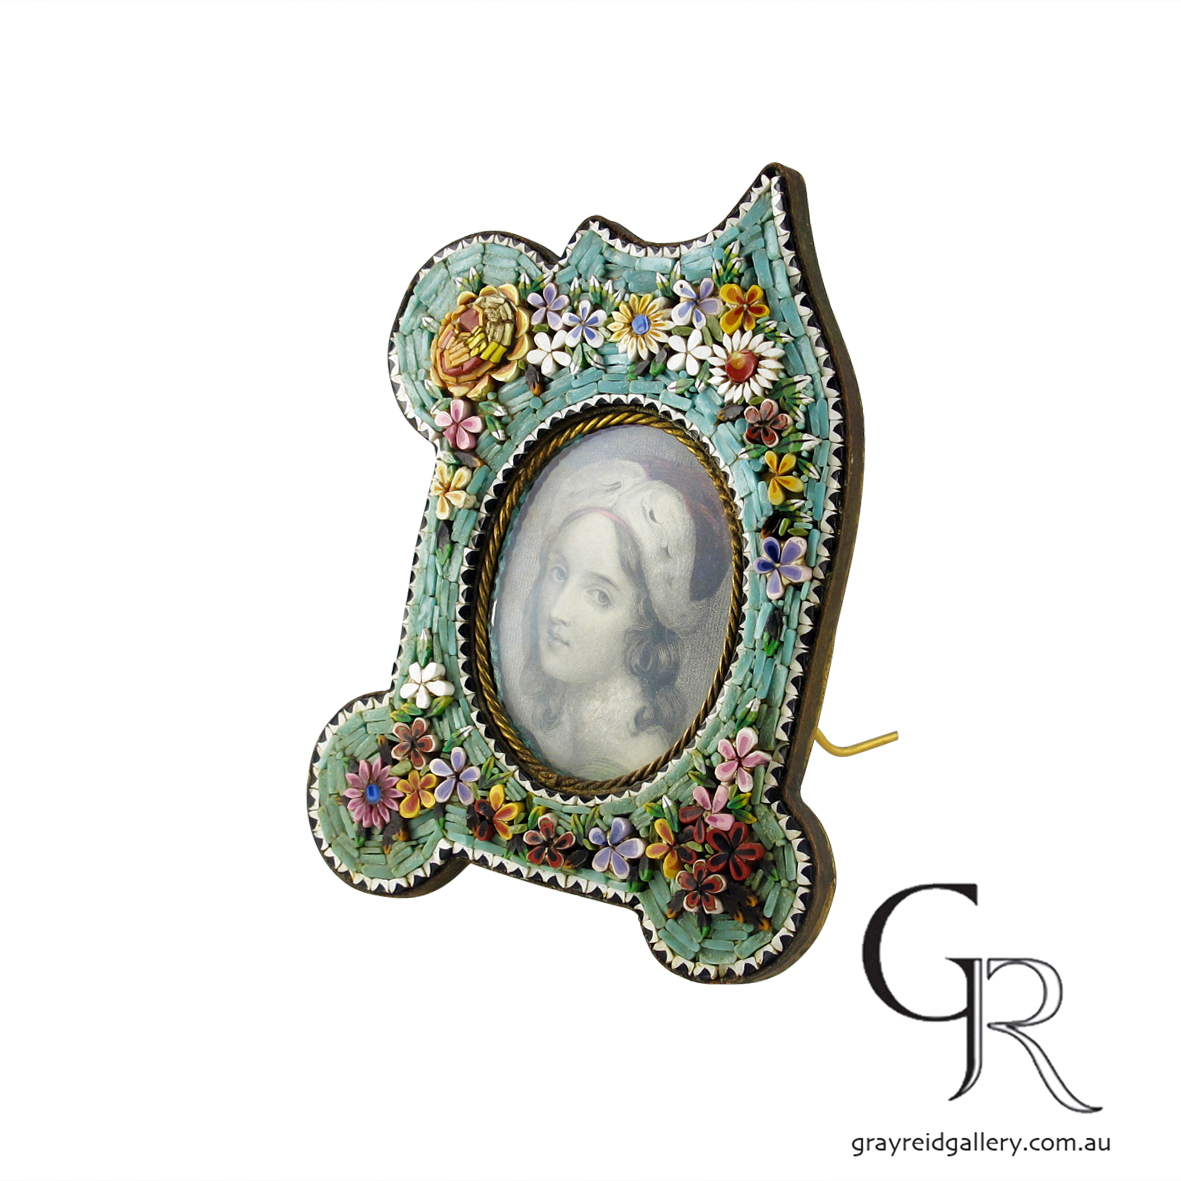 antiques and collectables melbourne micro mosaic picture frame Gray Reid Gallery 2.jpg